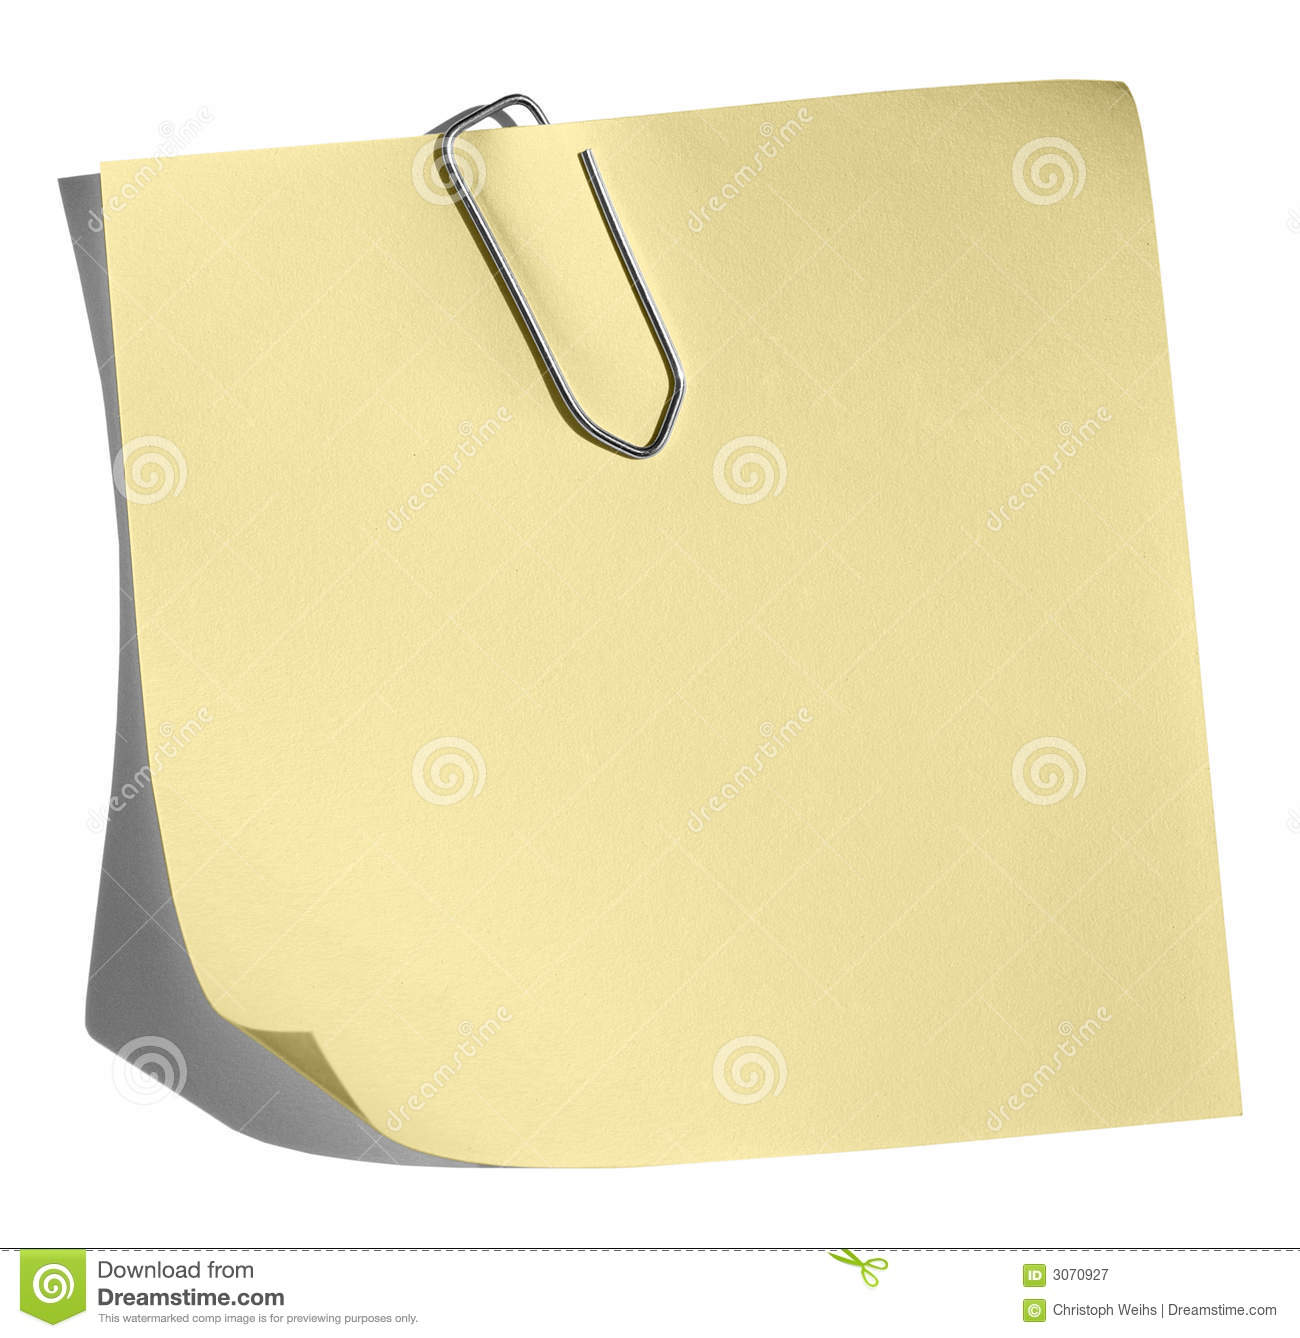 Business Plan Step By Step Planning Templates Entrepreneur Yellow Memo Paper Clip Royalty Free Stock Photography